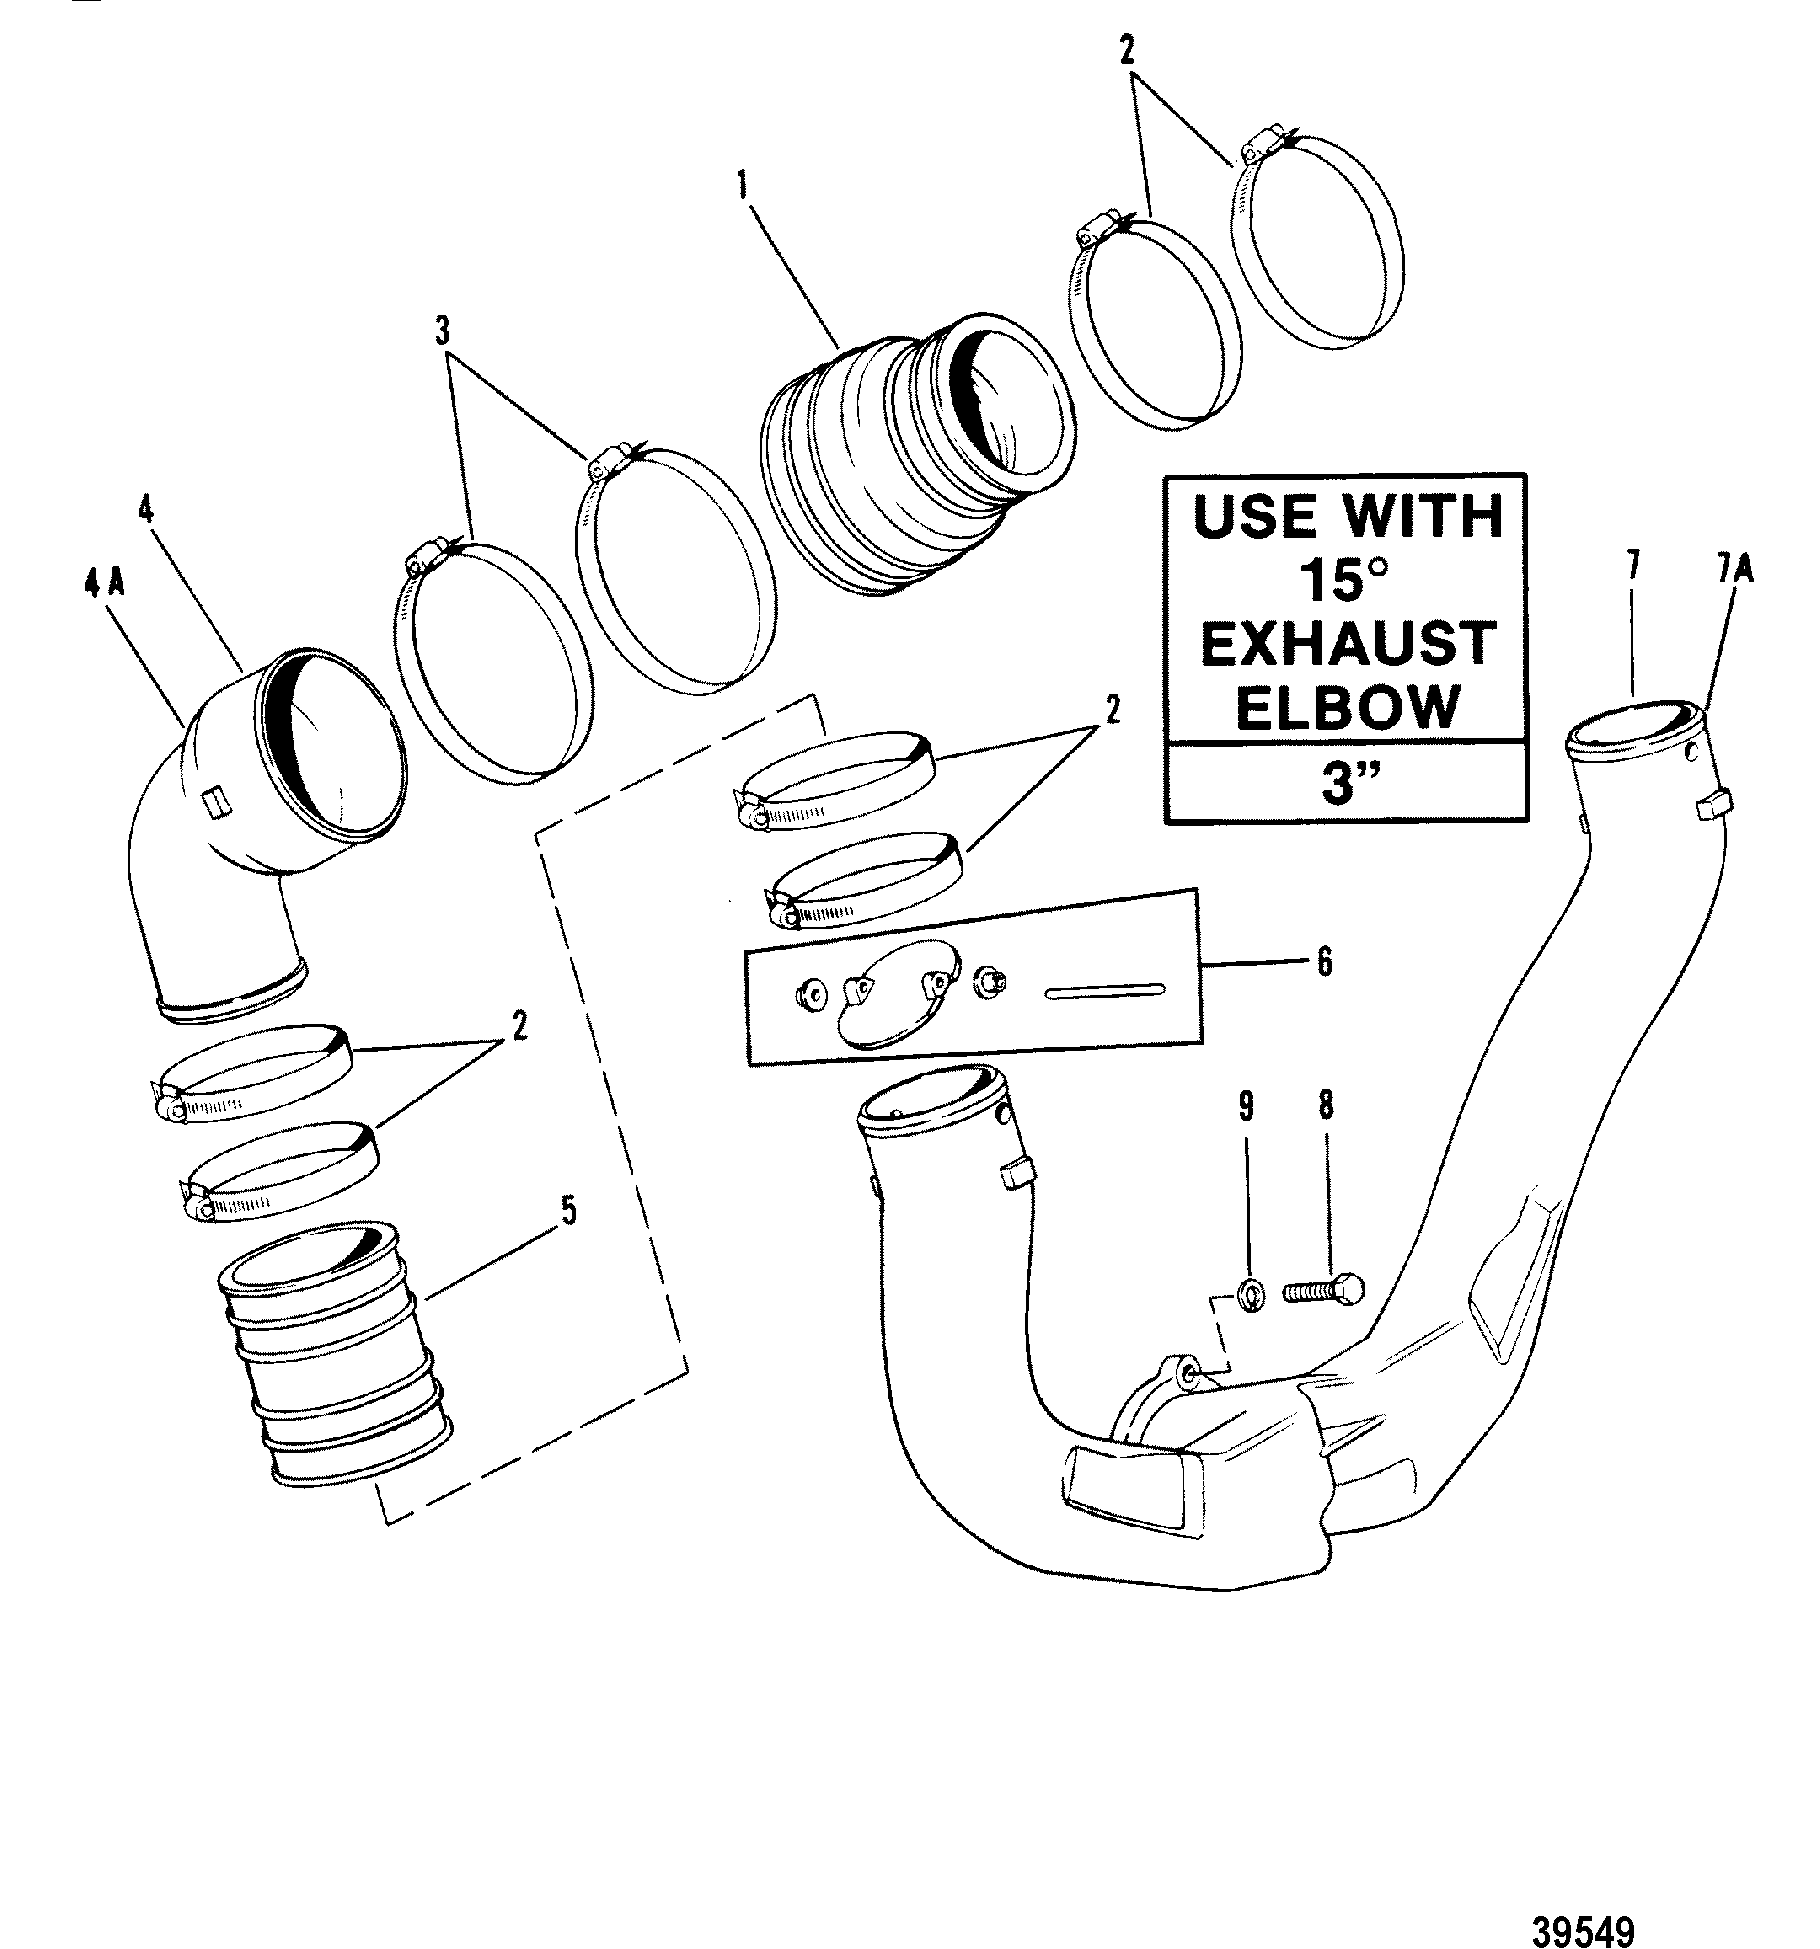 Exhaust System Use With 15 Degree Exhaust Elbow For